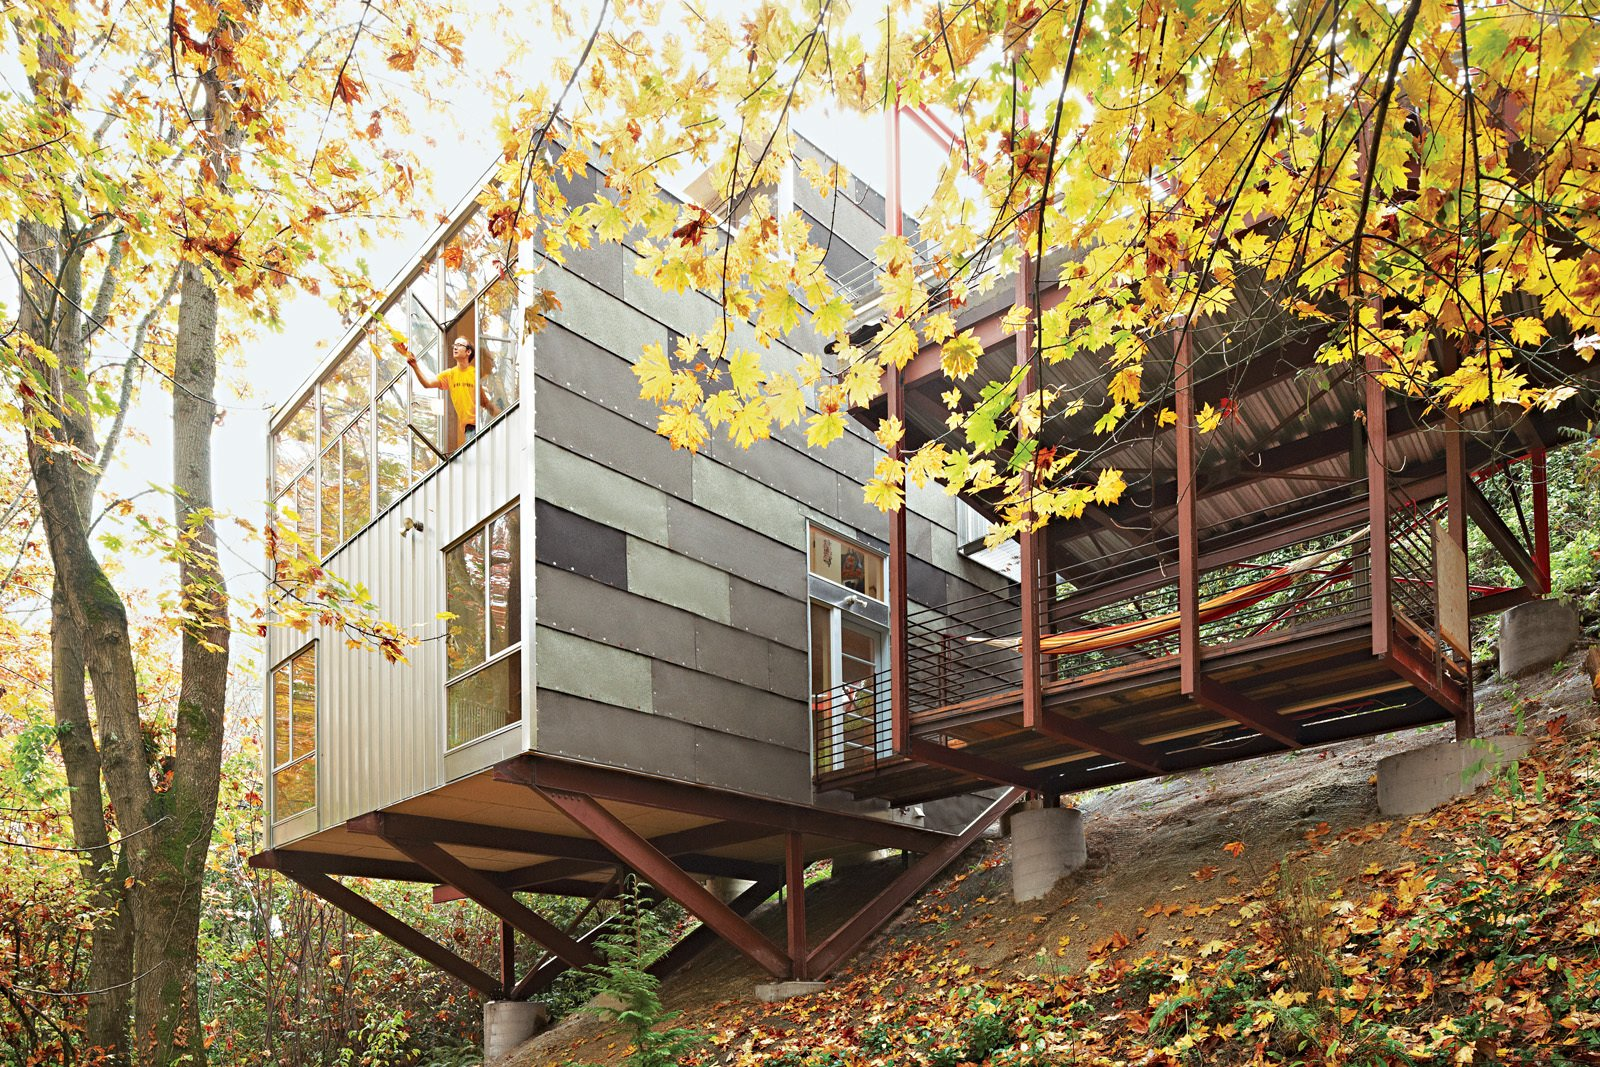 11 Hillside Homes That Feature A Balancing Act With Nature Dwell